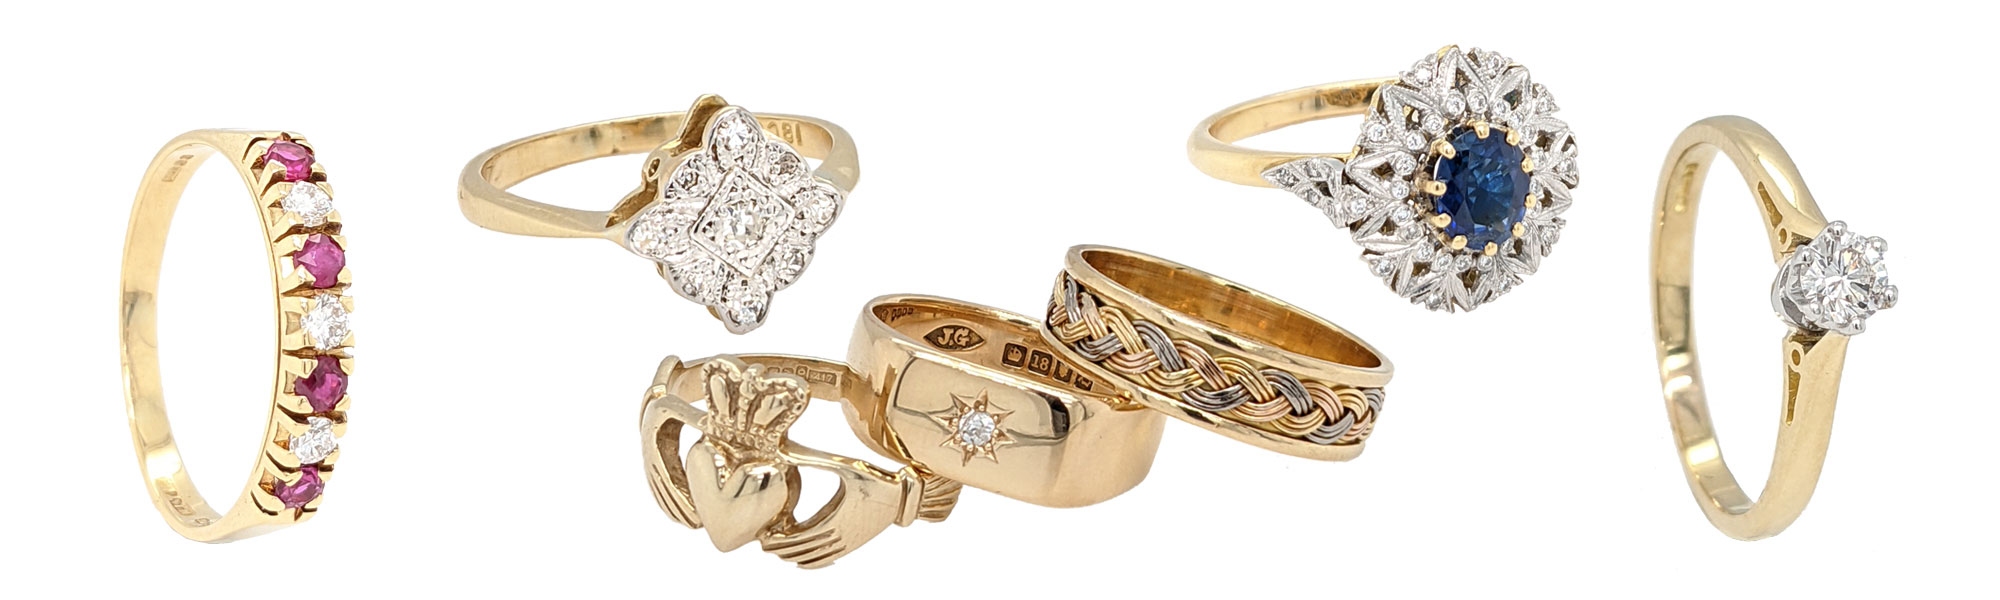 Jewellery blog by Sally Thornton for Thorntons Jewellers Kettering Northampton Pre loved rings Banner